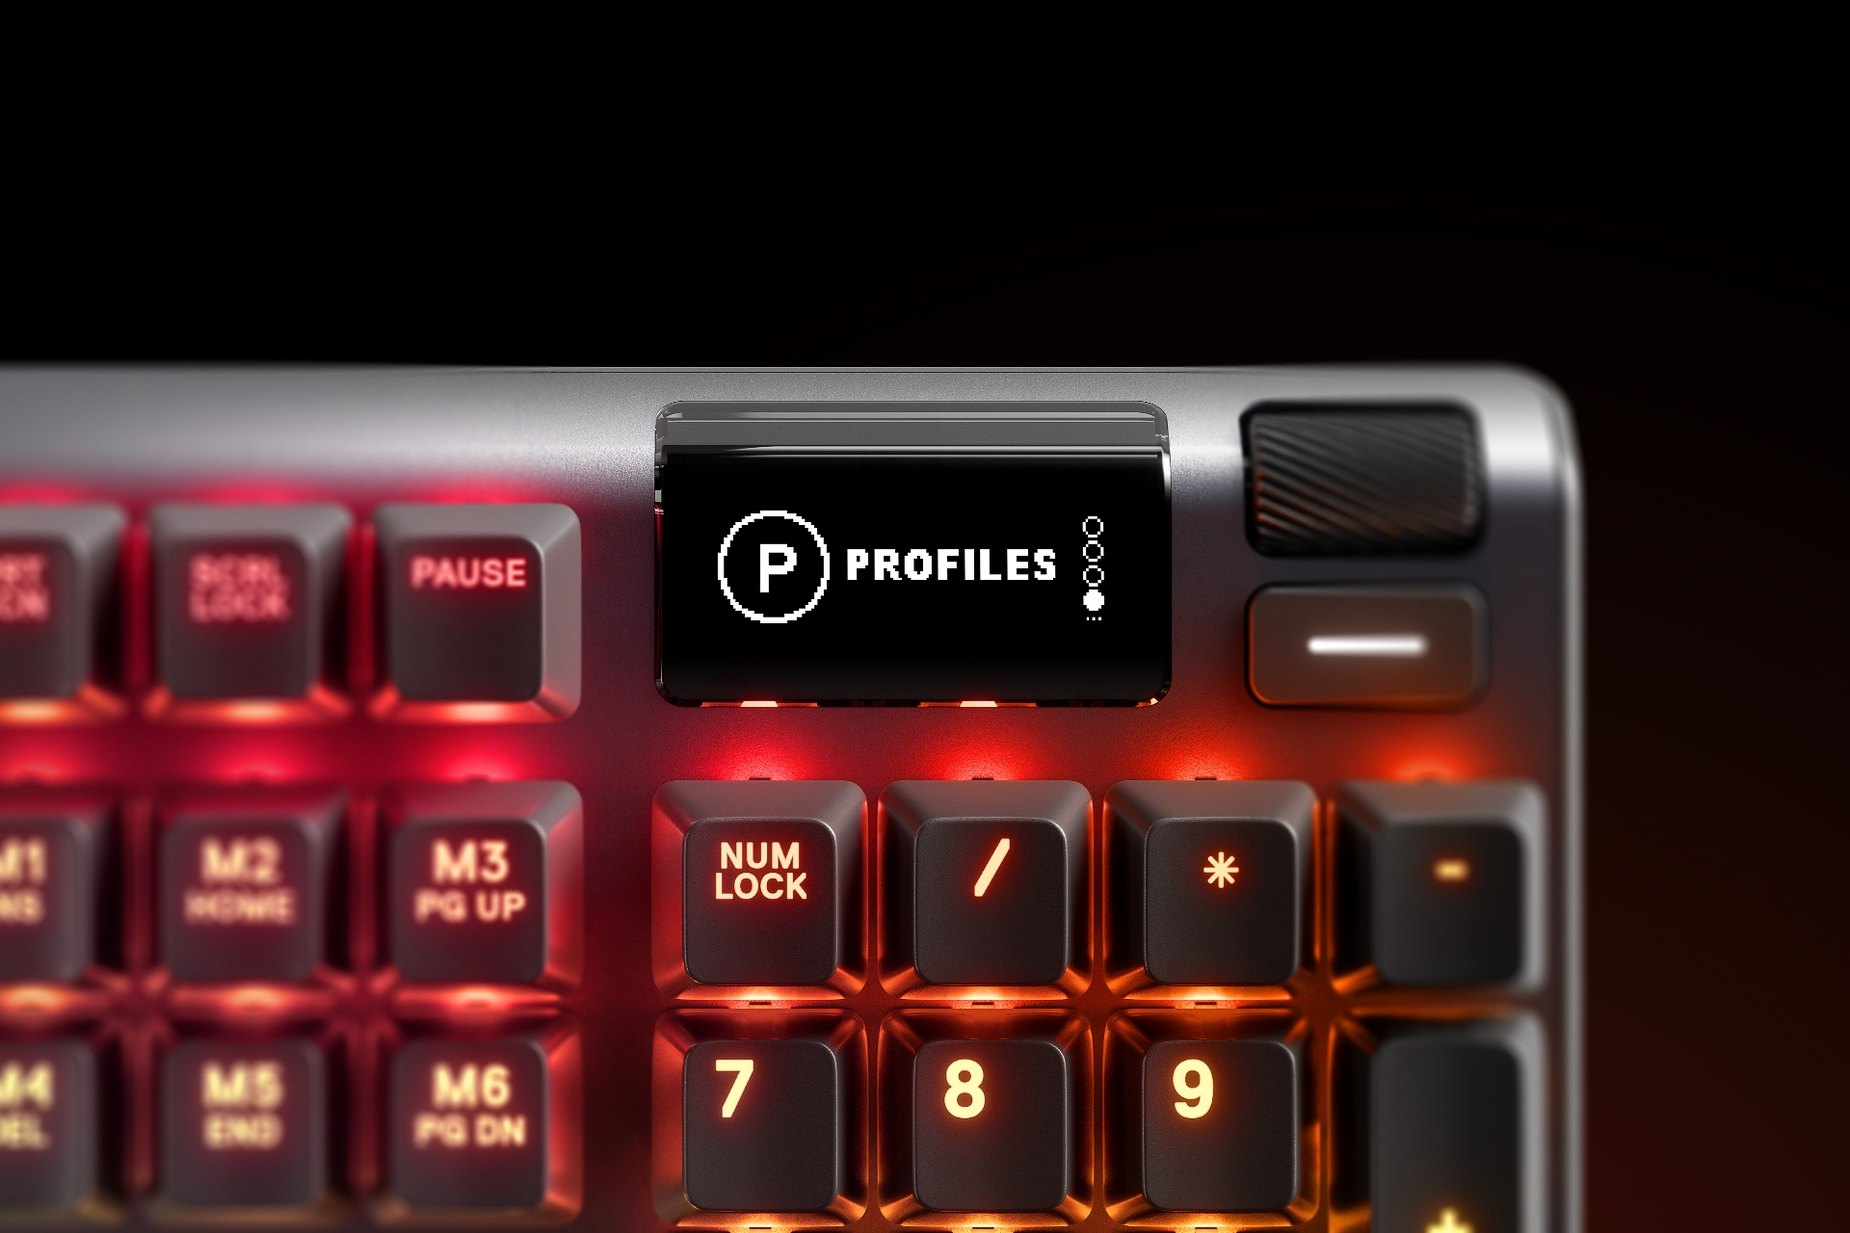 Zoomed in view of the multimedia and settings controls/volume roller on the German-Apex 7 (Brown Switch) gaming keyboard